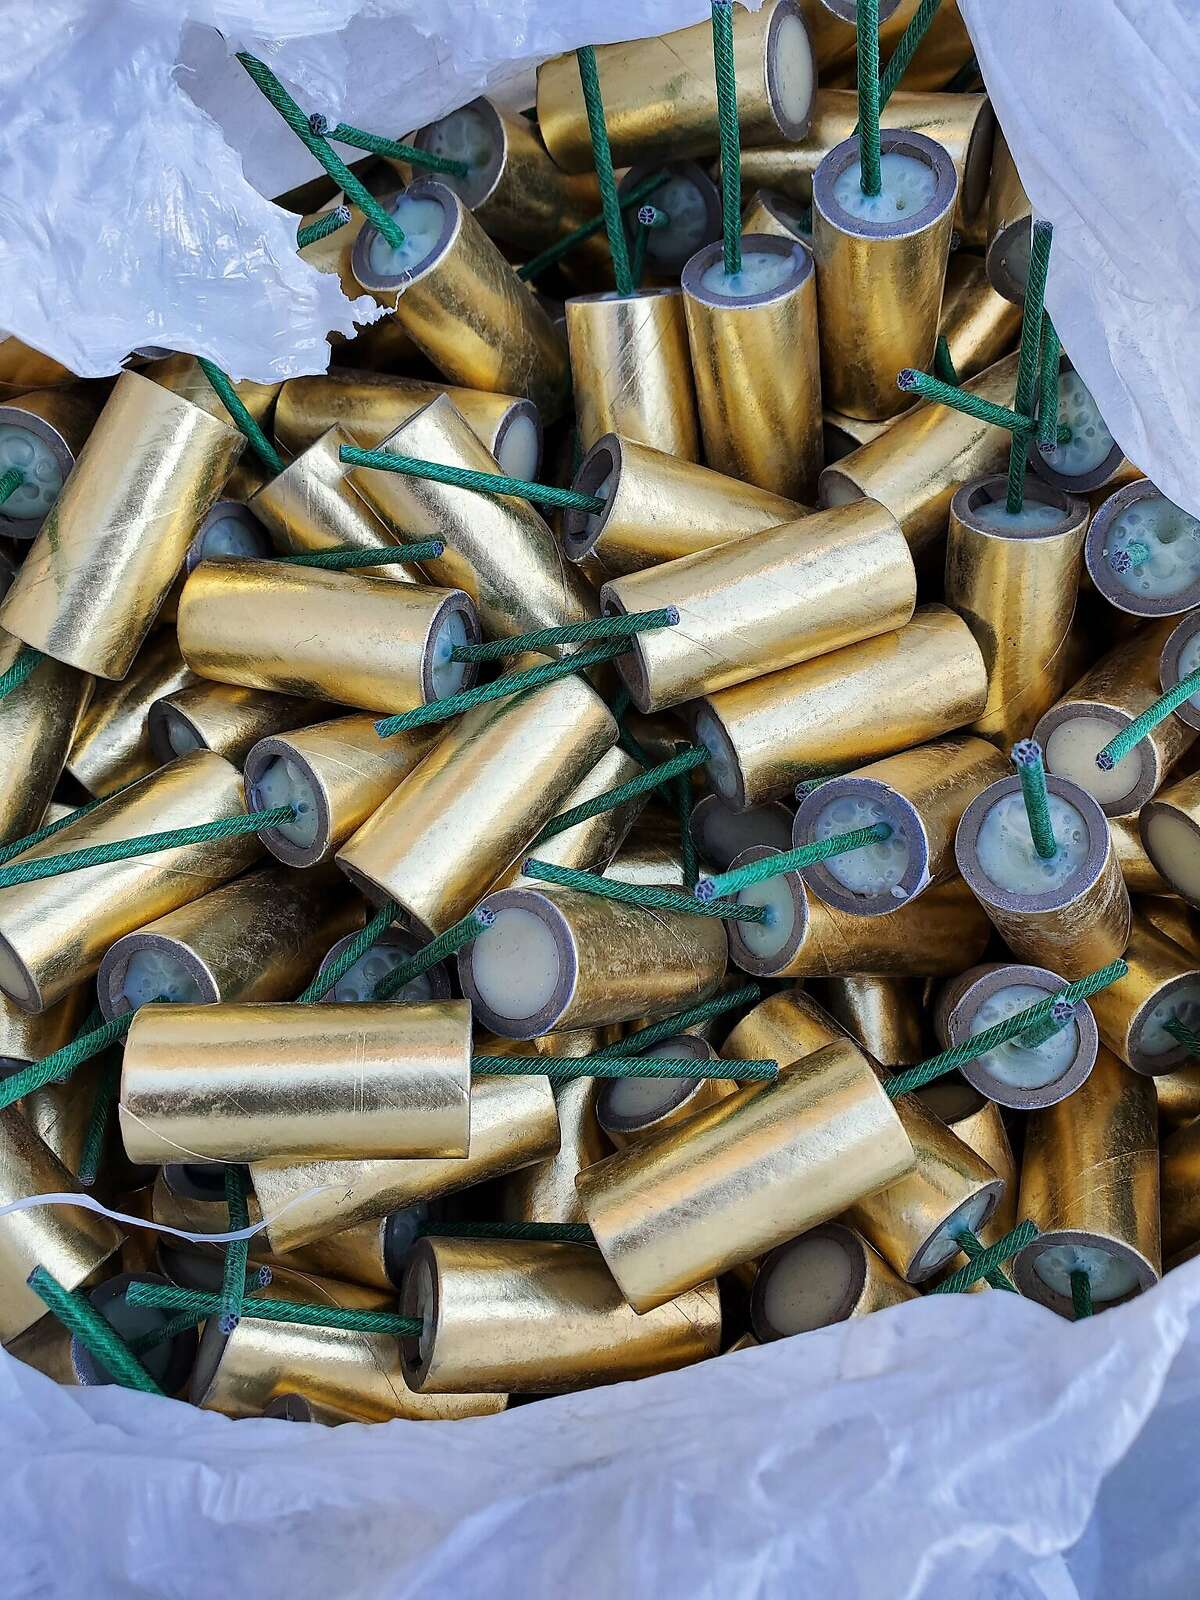 An unoccupied car near Washington Manor Park in San Leandro turned up hundreds of M-80 firecrackers on Thursday, officials said.